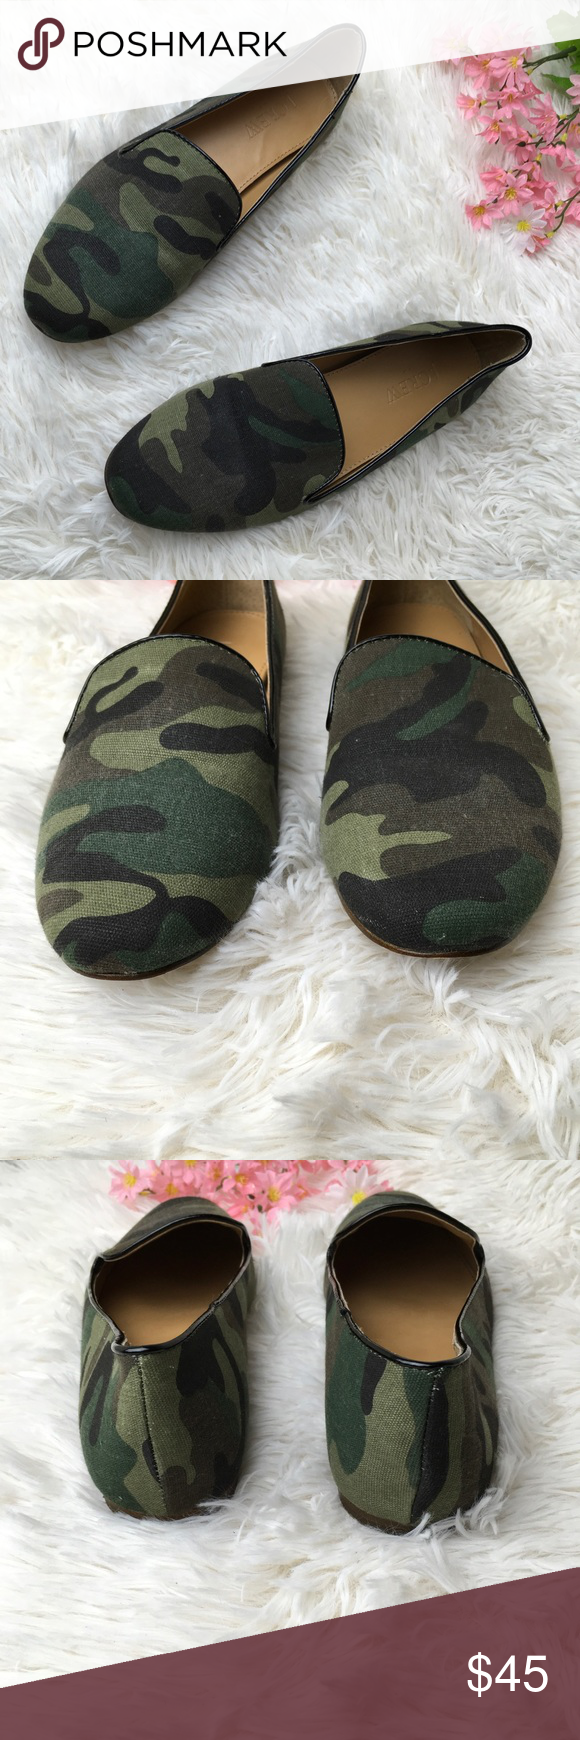 J. Crew Addie Camo Army Green Loafers Flats J. Crew Addie Camo Size 6 Sizes/Fit vary by Brand & Style  Pre owned   Please see all the pictures before purchase   Please comment with any questions before purchase J. Crew Shoes Flats & Loafers